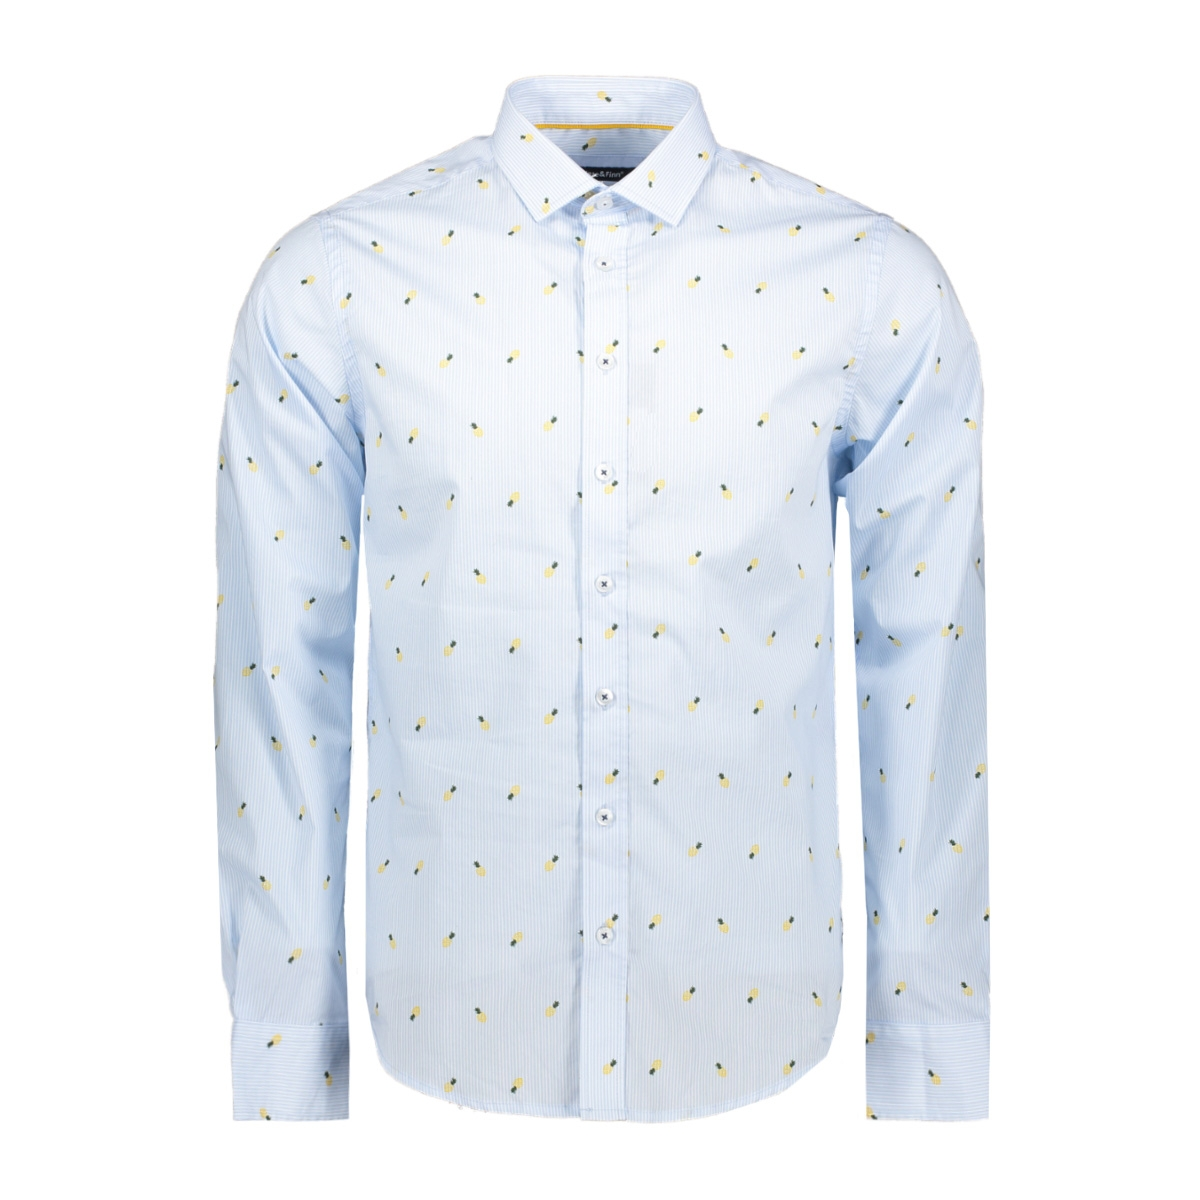 shirt aop stretch mc11 0100 03 haze & finn overhemd pina colada